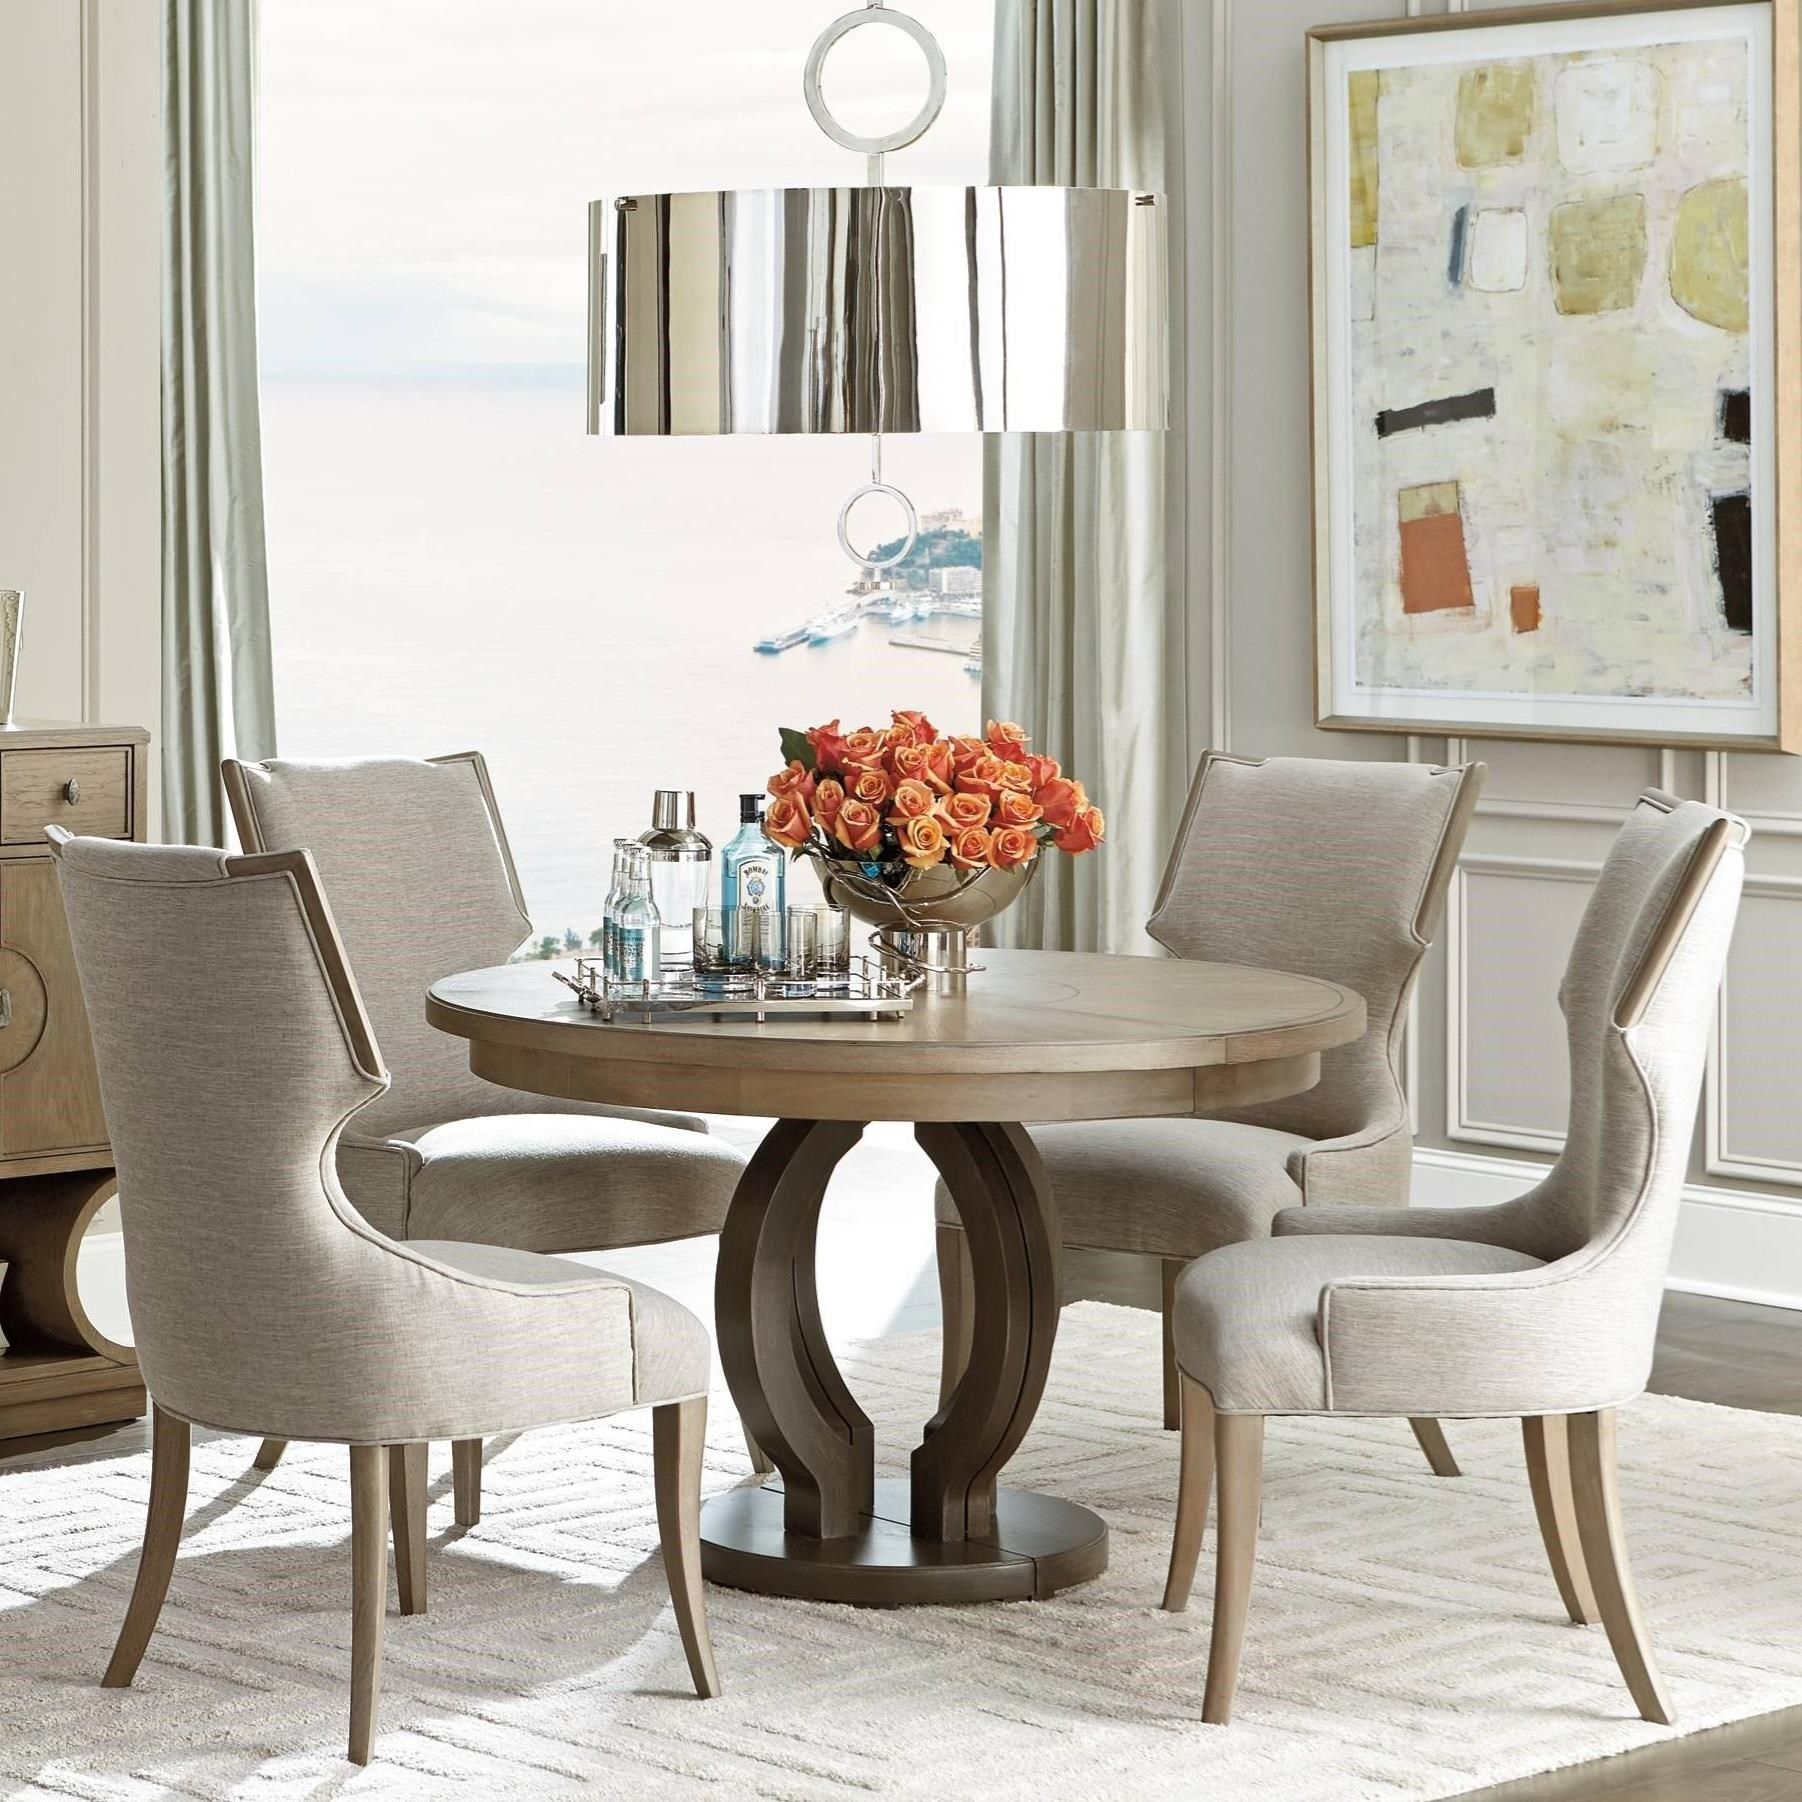 Virage 5Piece Round Dining Table Setstanley Furniture  Home Pleasing Stanley Dining Room Set Inspiration